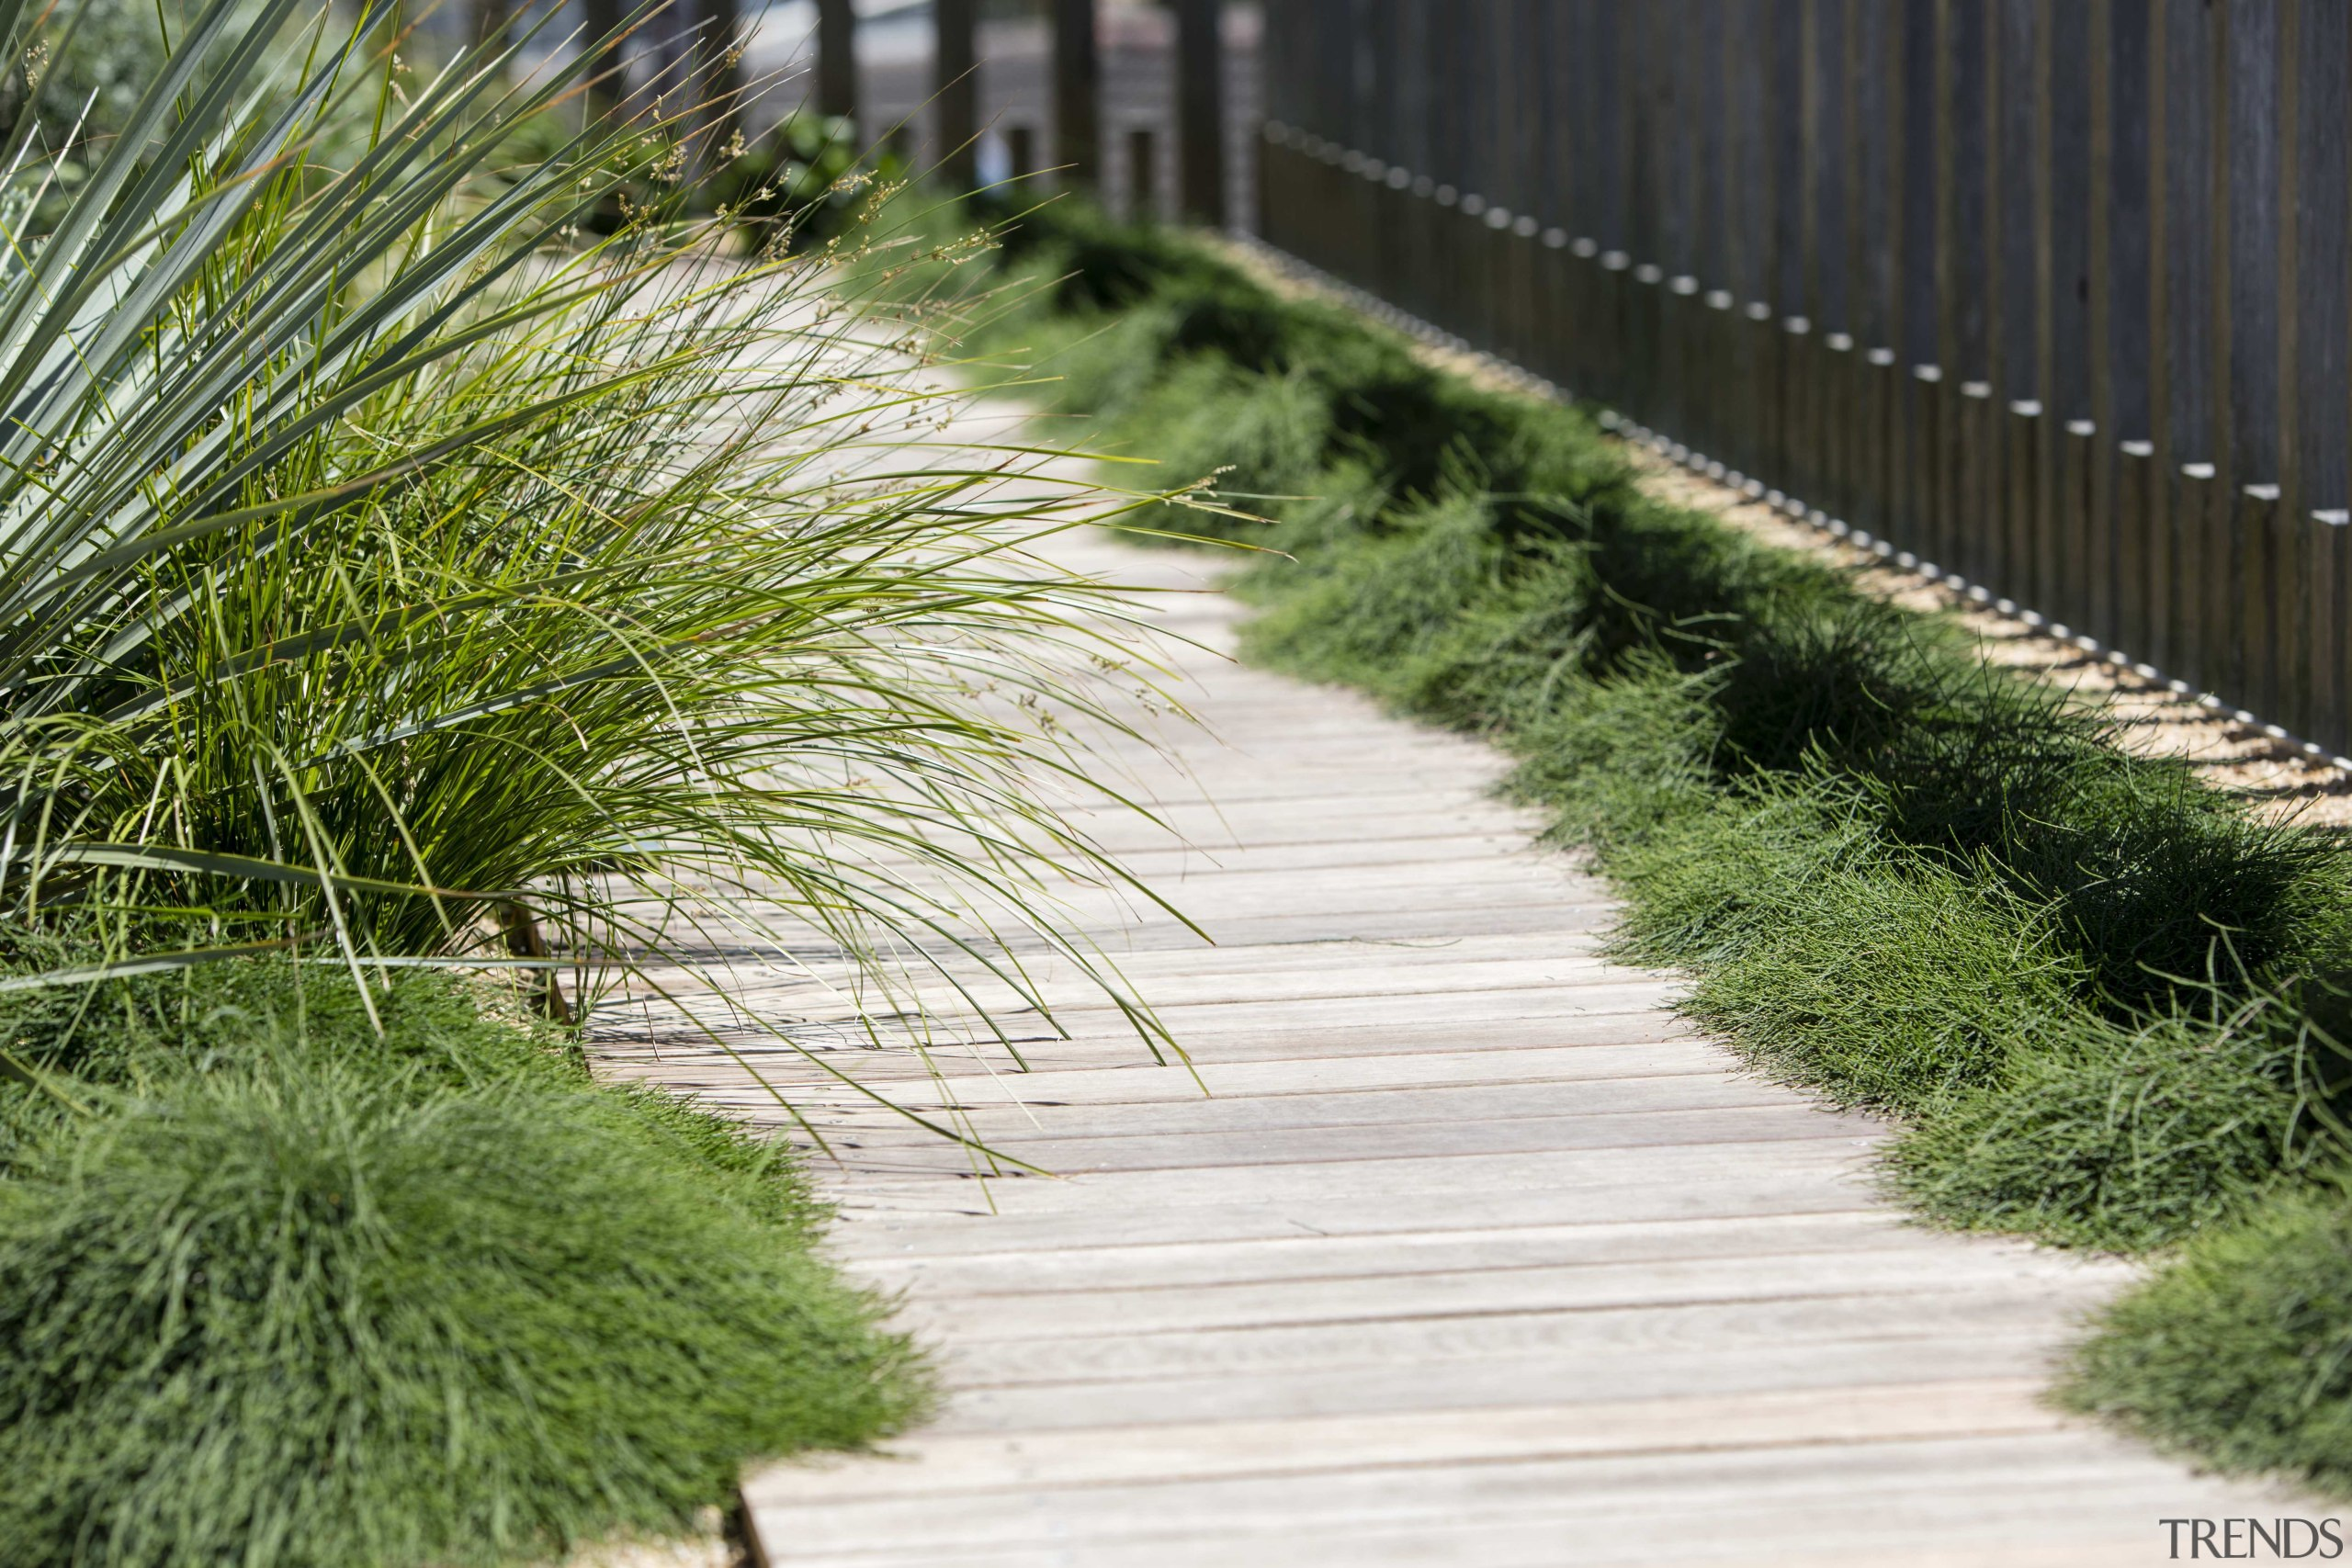 5 top tips for a green rooftop oasis boardwalk, chrysopogon zizanioides, garden, grass, grass family, groundcover, landscape, landscaping, lawn, path, plant, sidewalk, tree, walkway, green, white